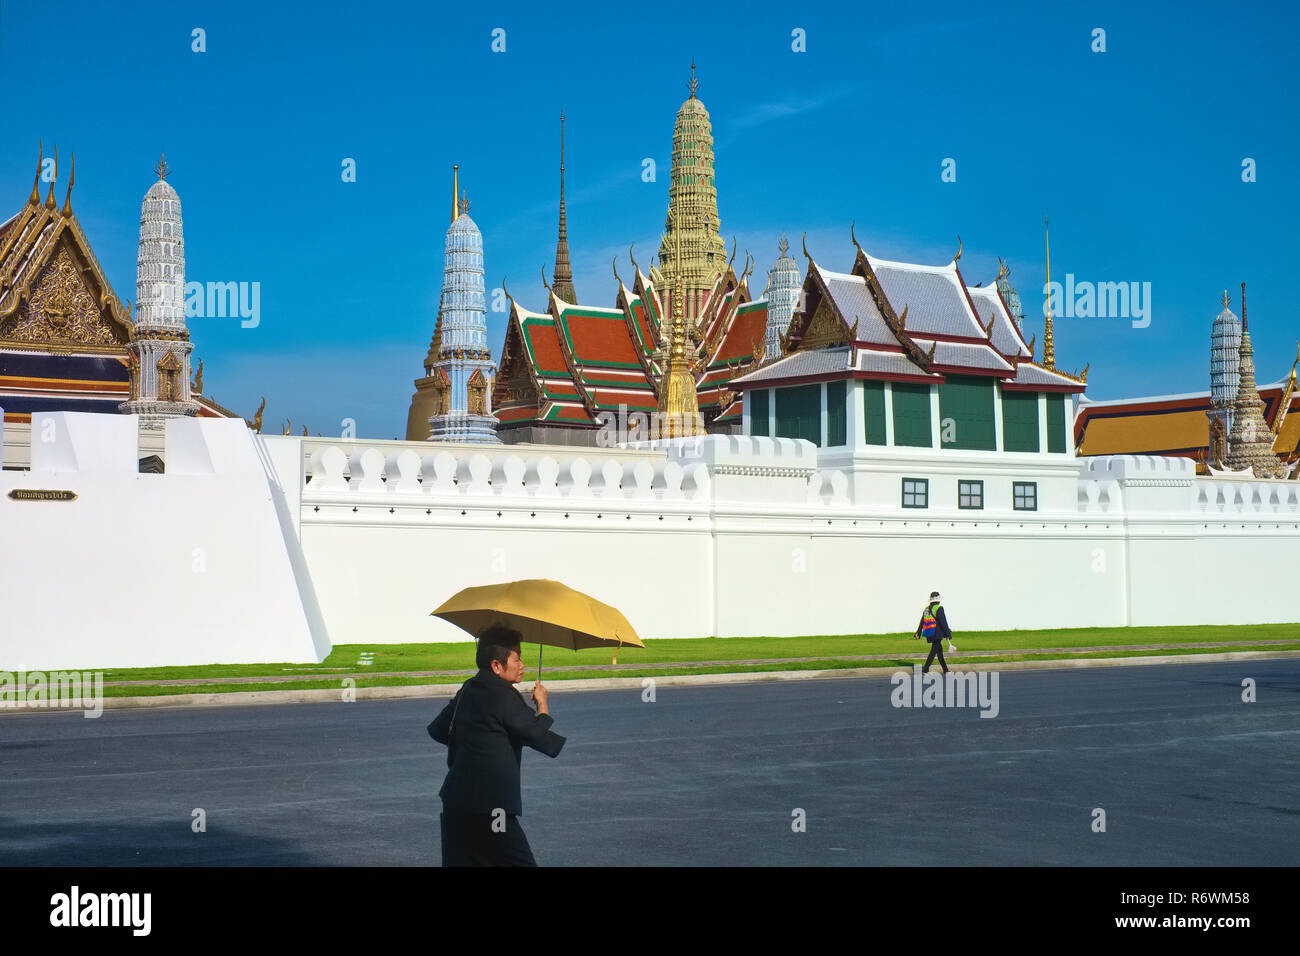 Pedestrians walking past the impressive skyline of Wat Phra Kaew (Gaew) and the Grand Palace in Bangkok, Thailand, the country's most revered temple - Stock Image